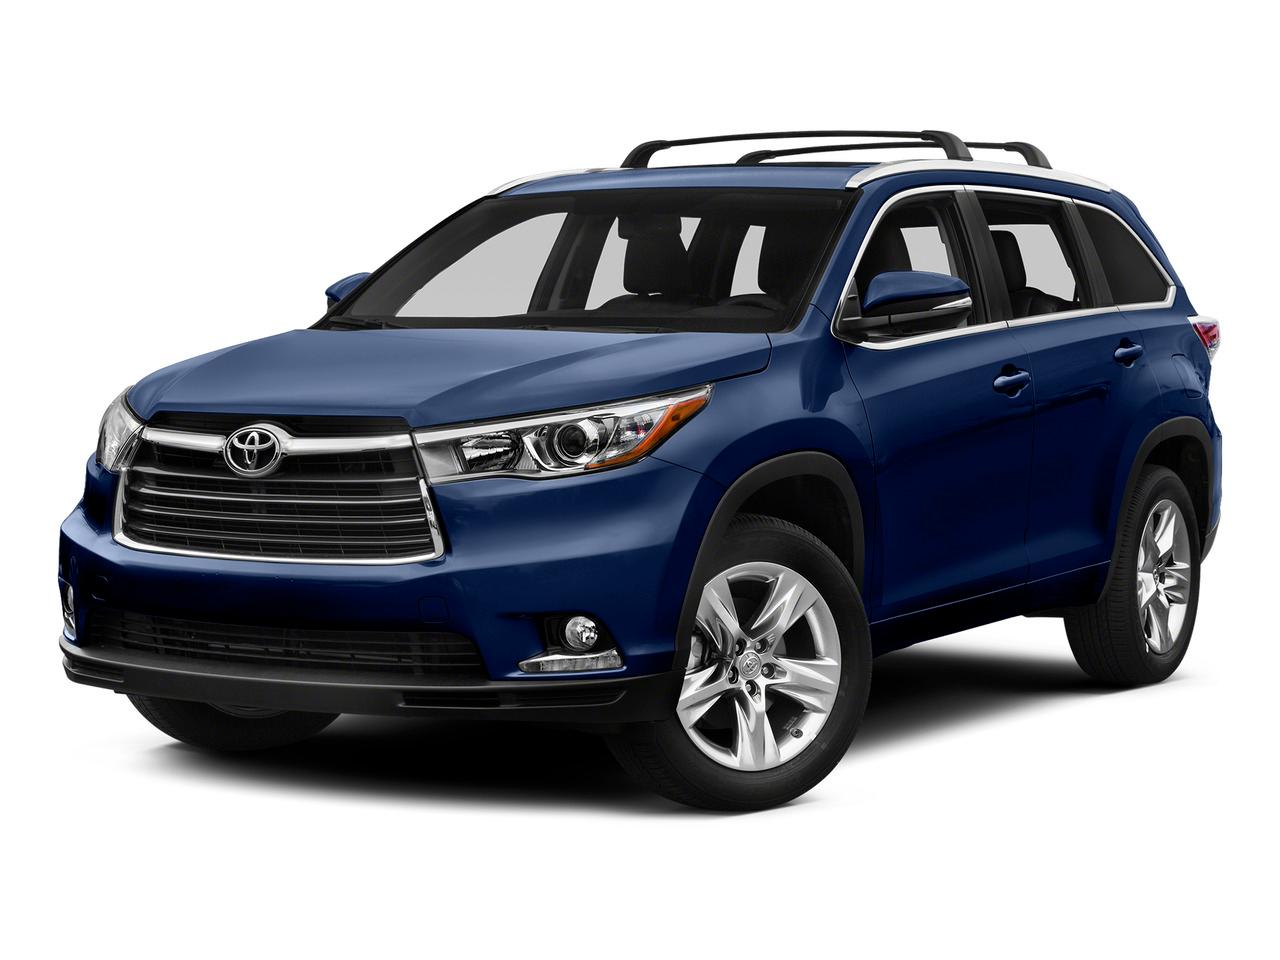 2015 Toyota Highlander Vehicle Photo in Greensboro, NC 27405